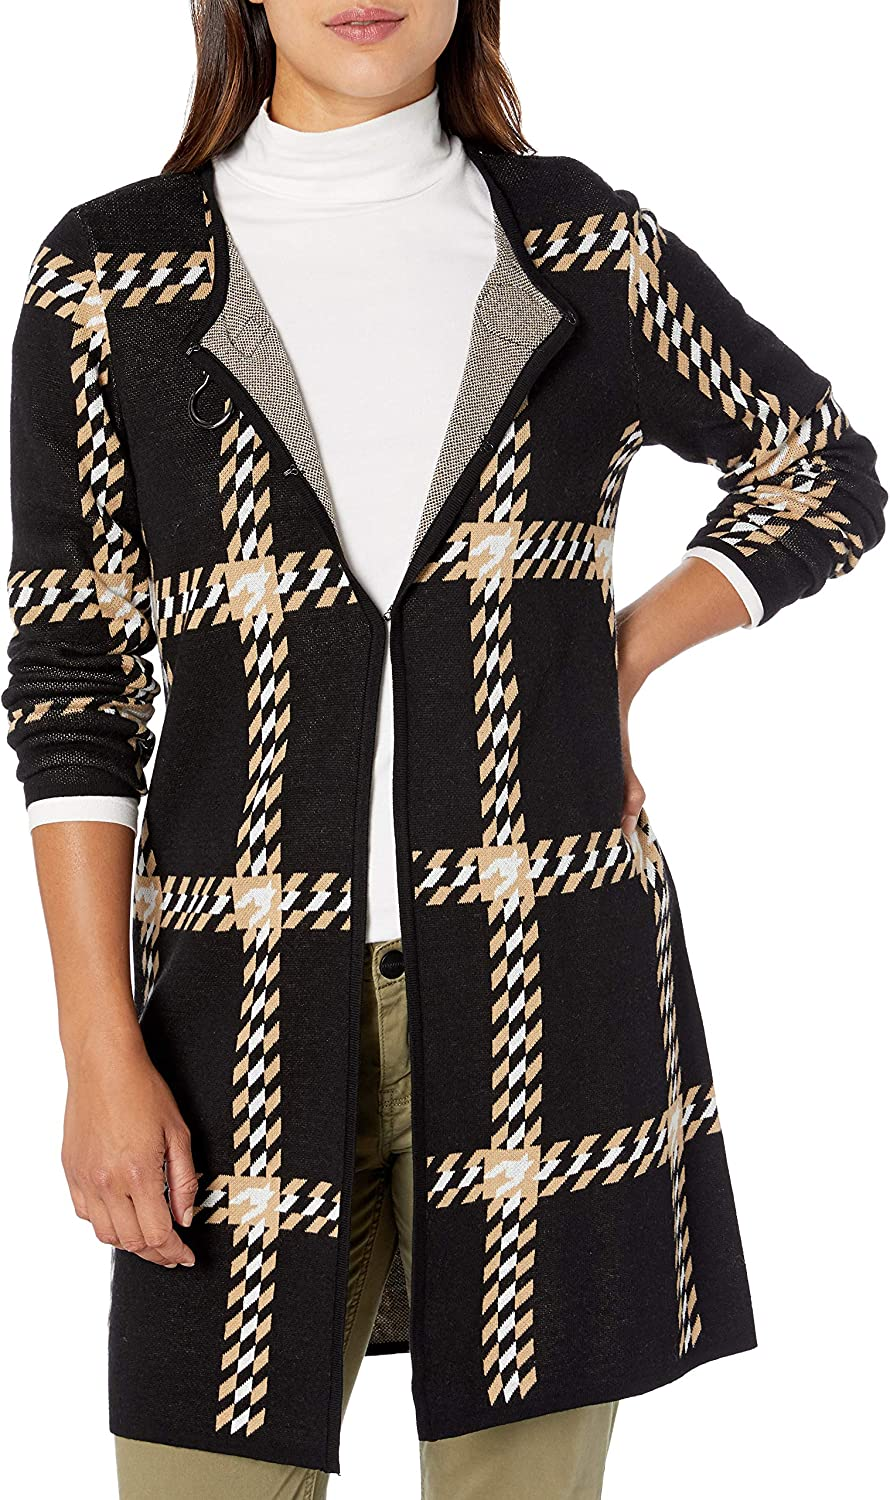 Max 90% OFF Kasper Women's Large Houndstooth Collar Notch Sweater Jacquard Max 83% OFF